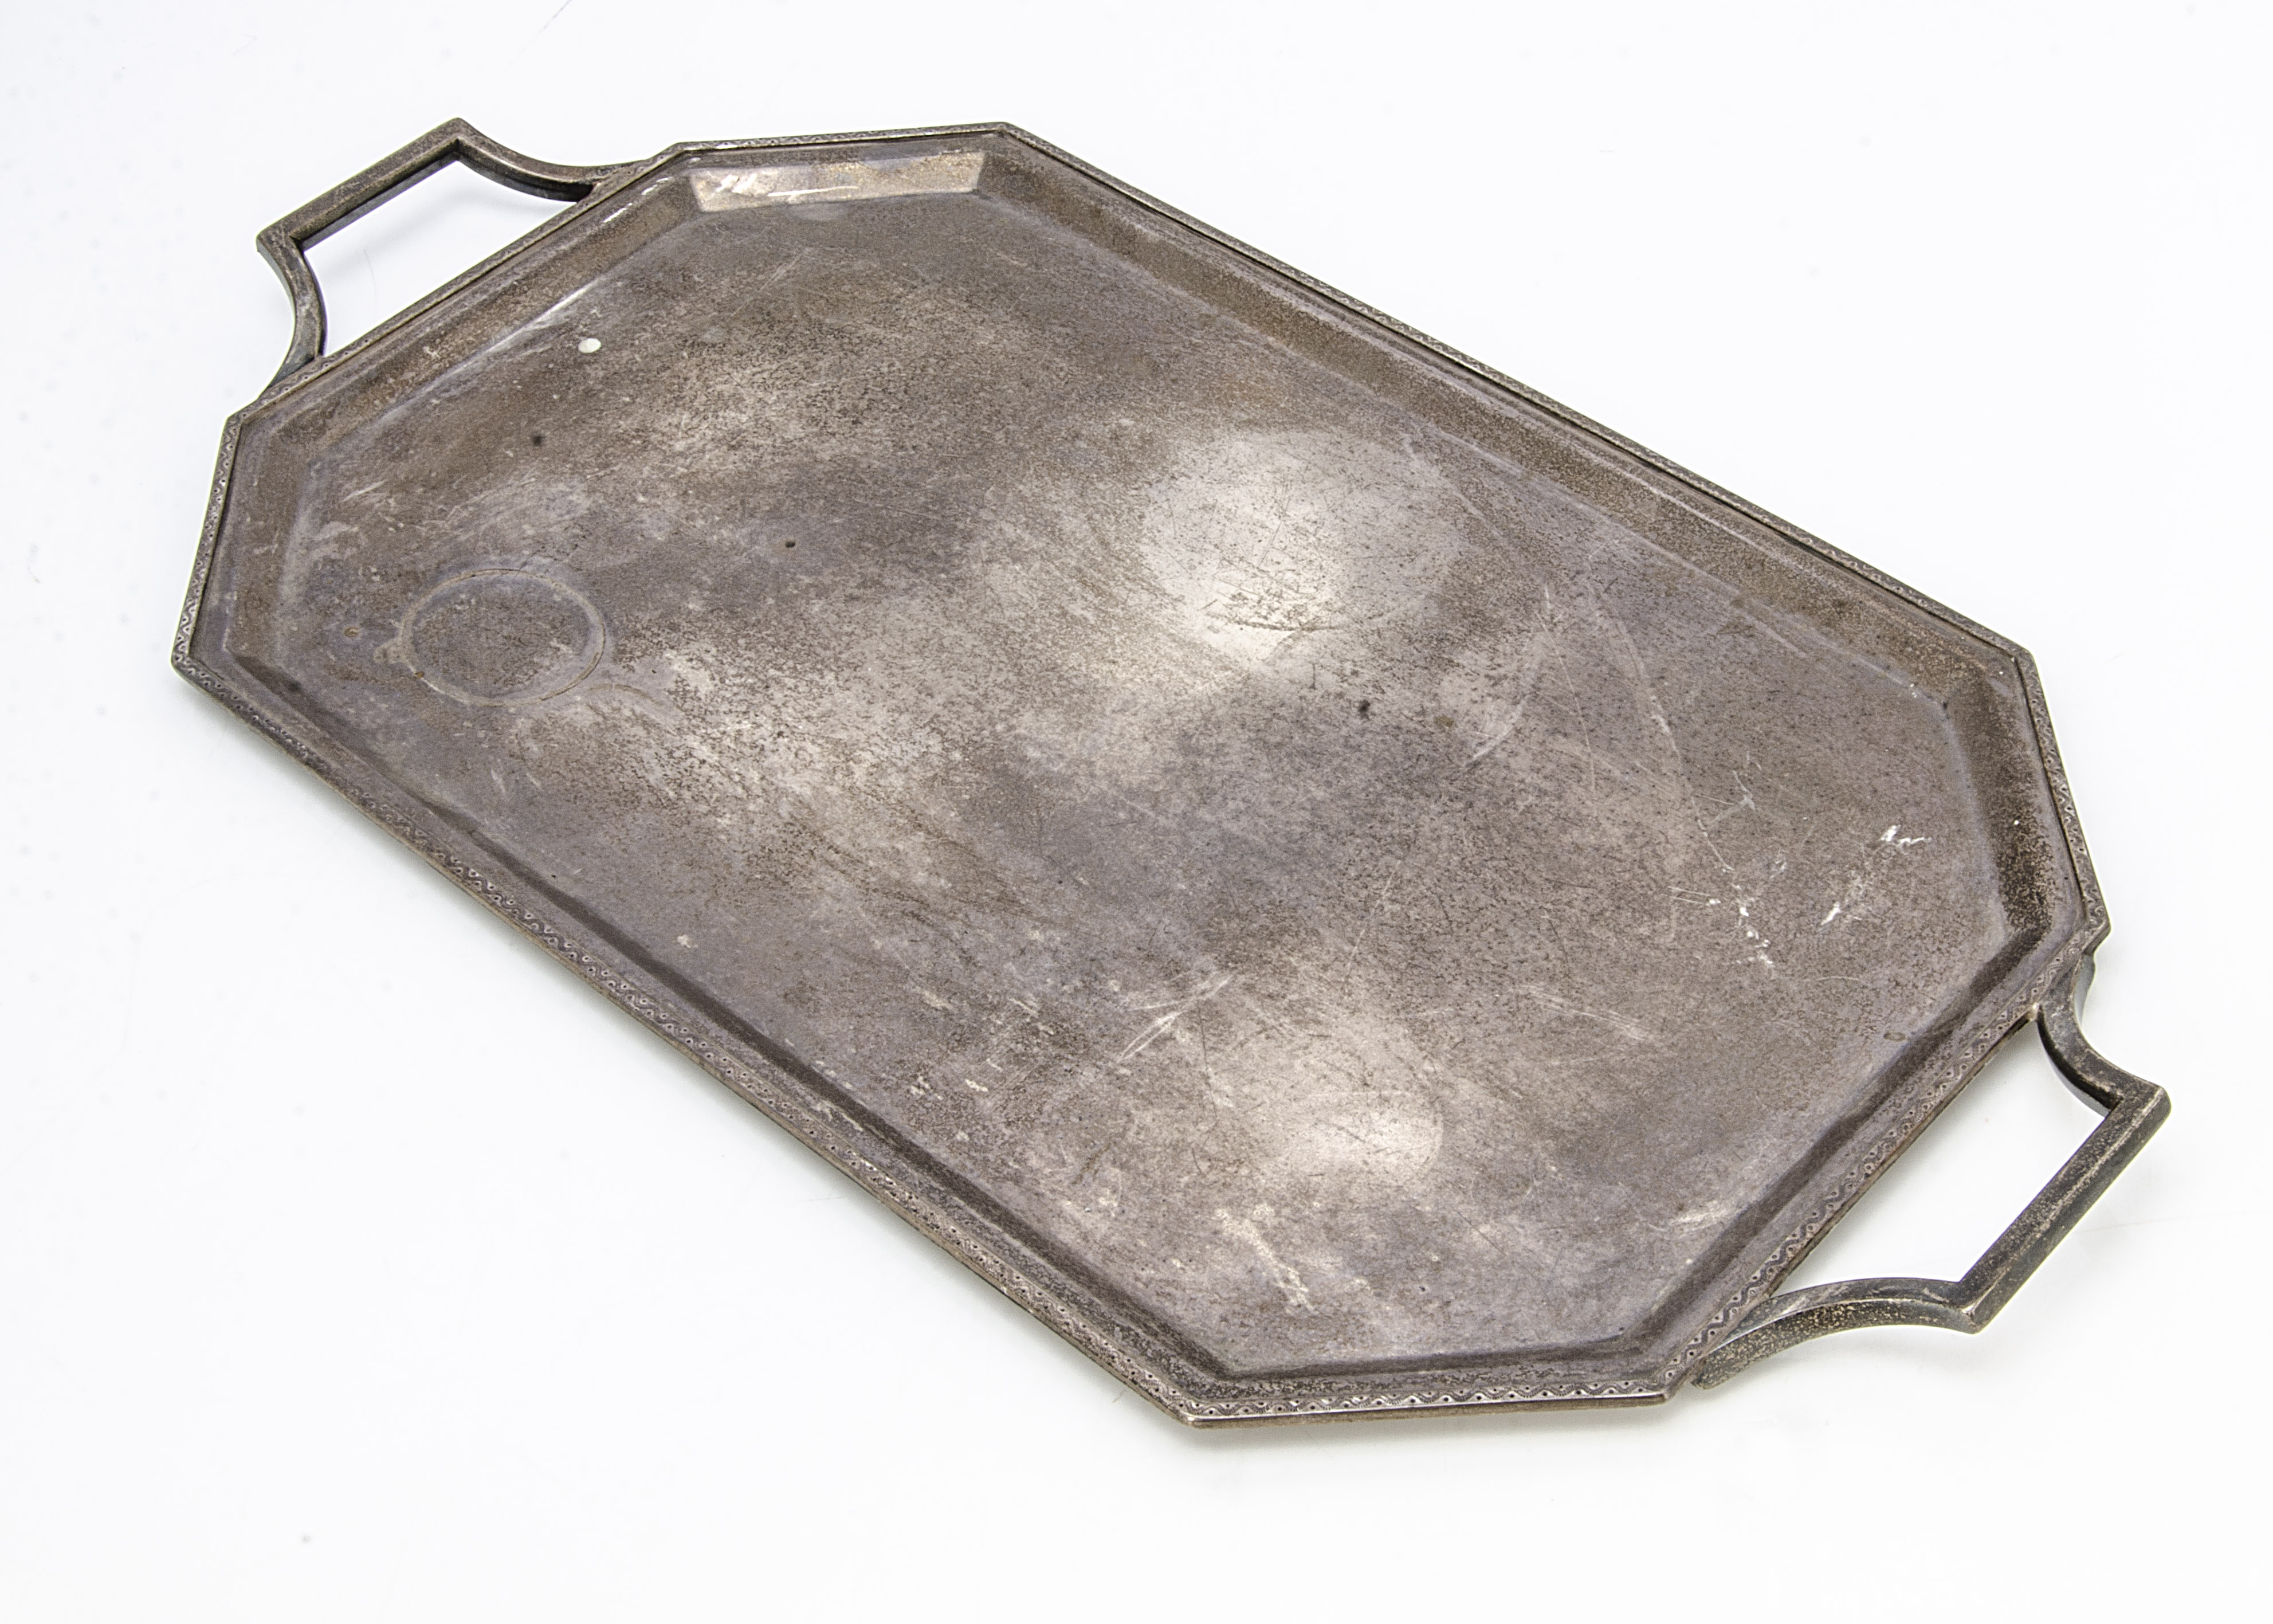 An Art Deco period silver tray by R & S, twin handled octagonal with wavy design to rim, 39.4 ozt